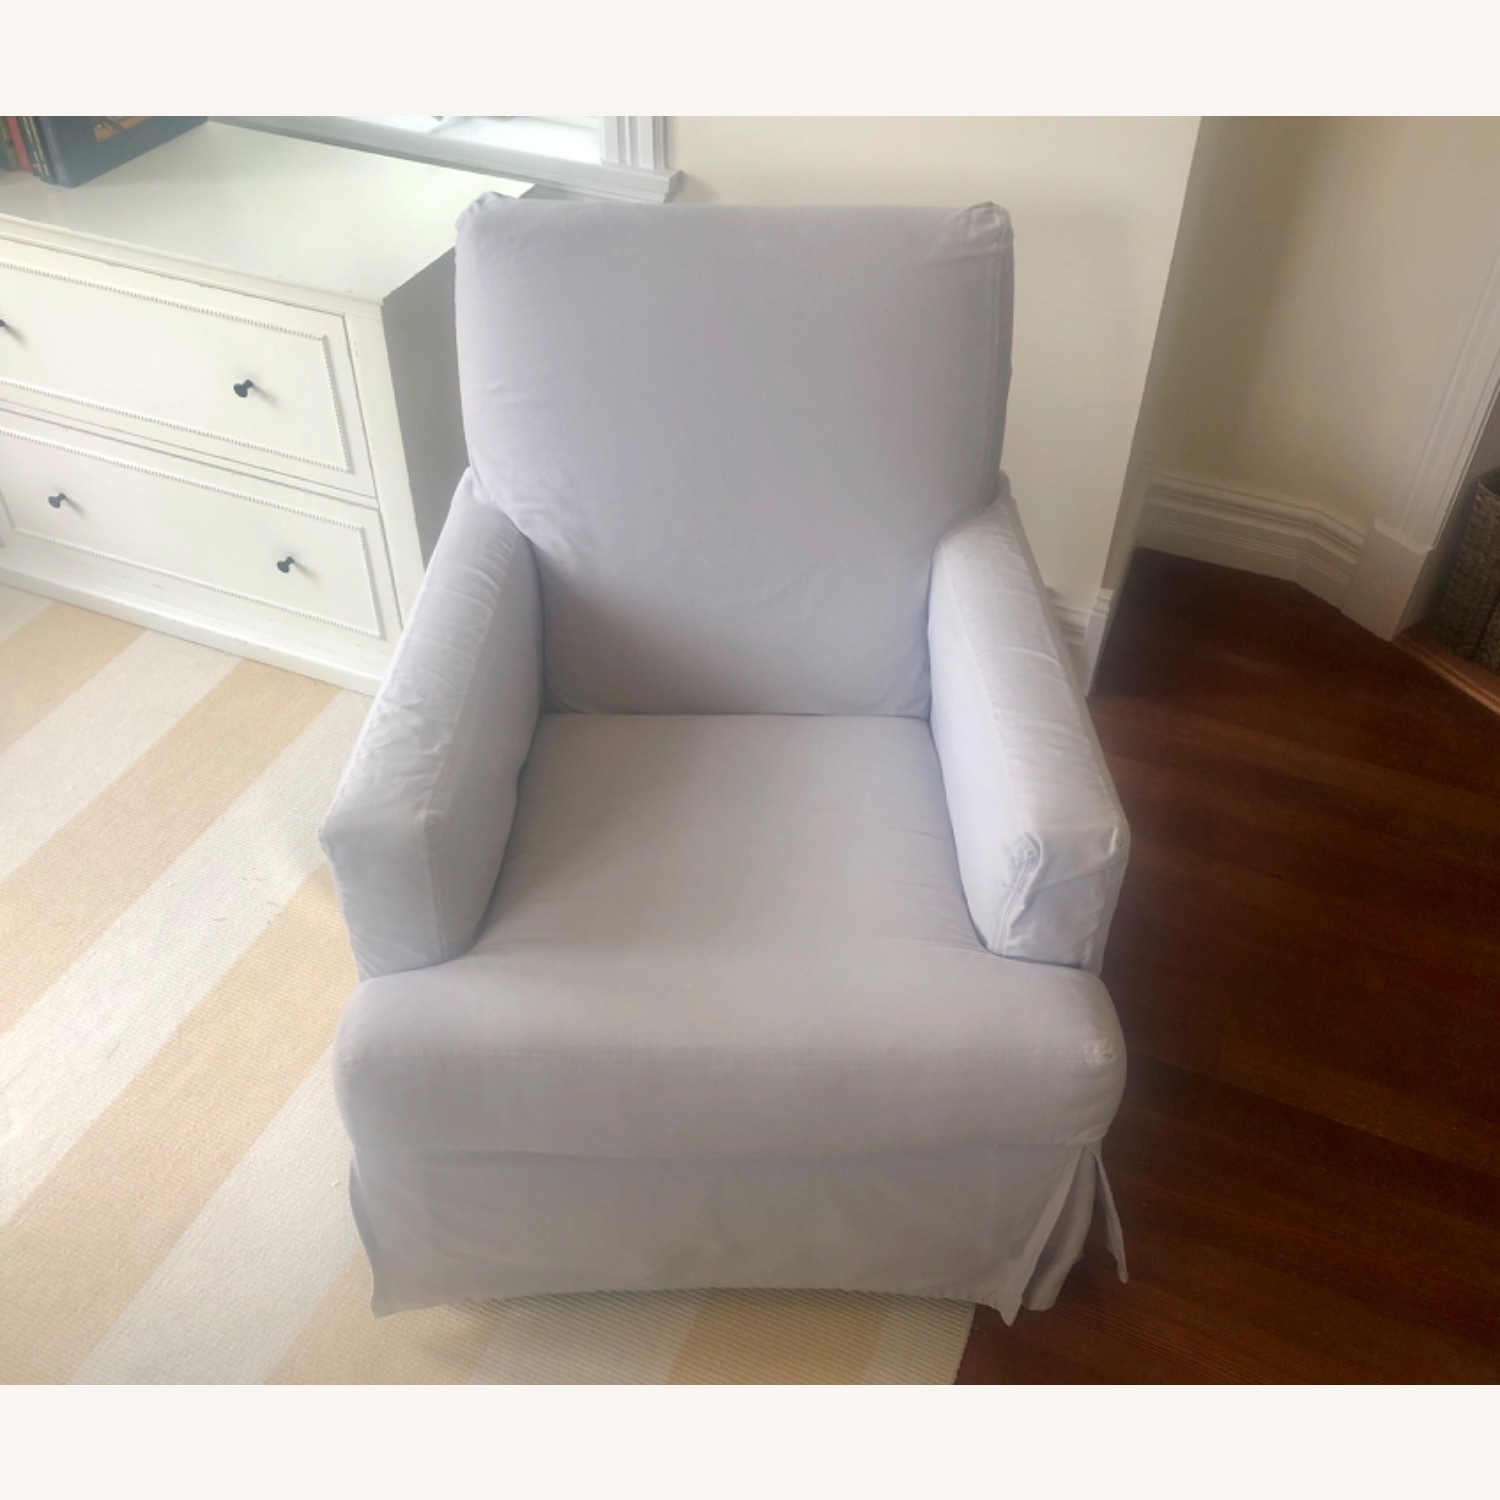 Pottery Barn Glider Chair - image-2